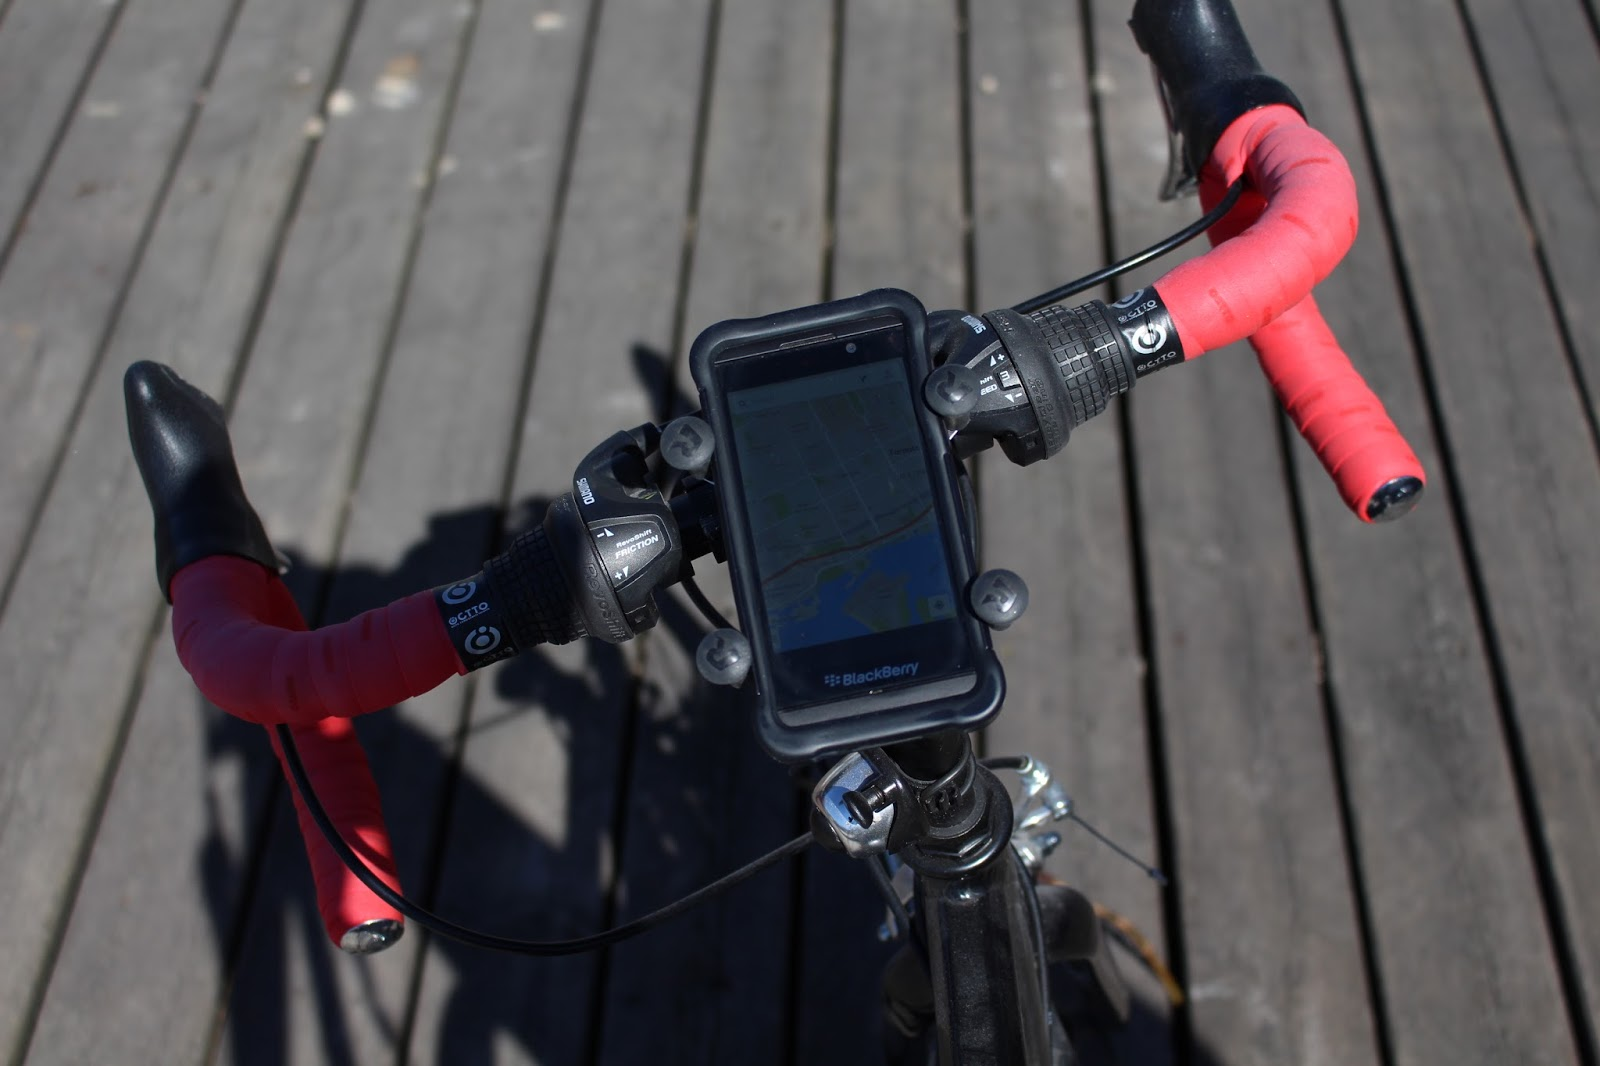 Phone attached and navigation on